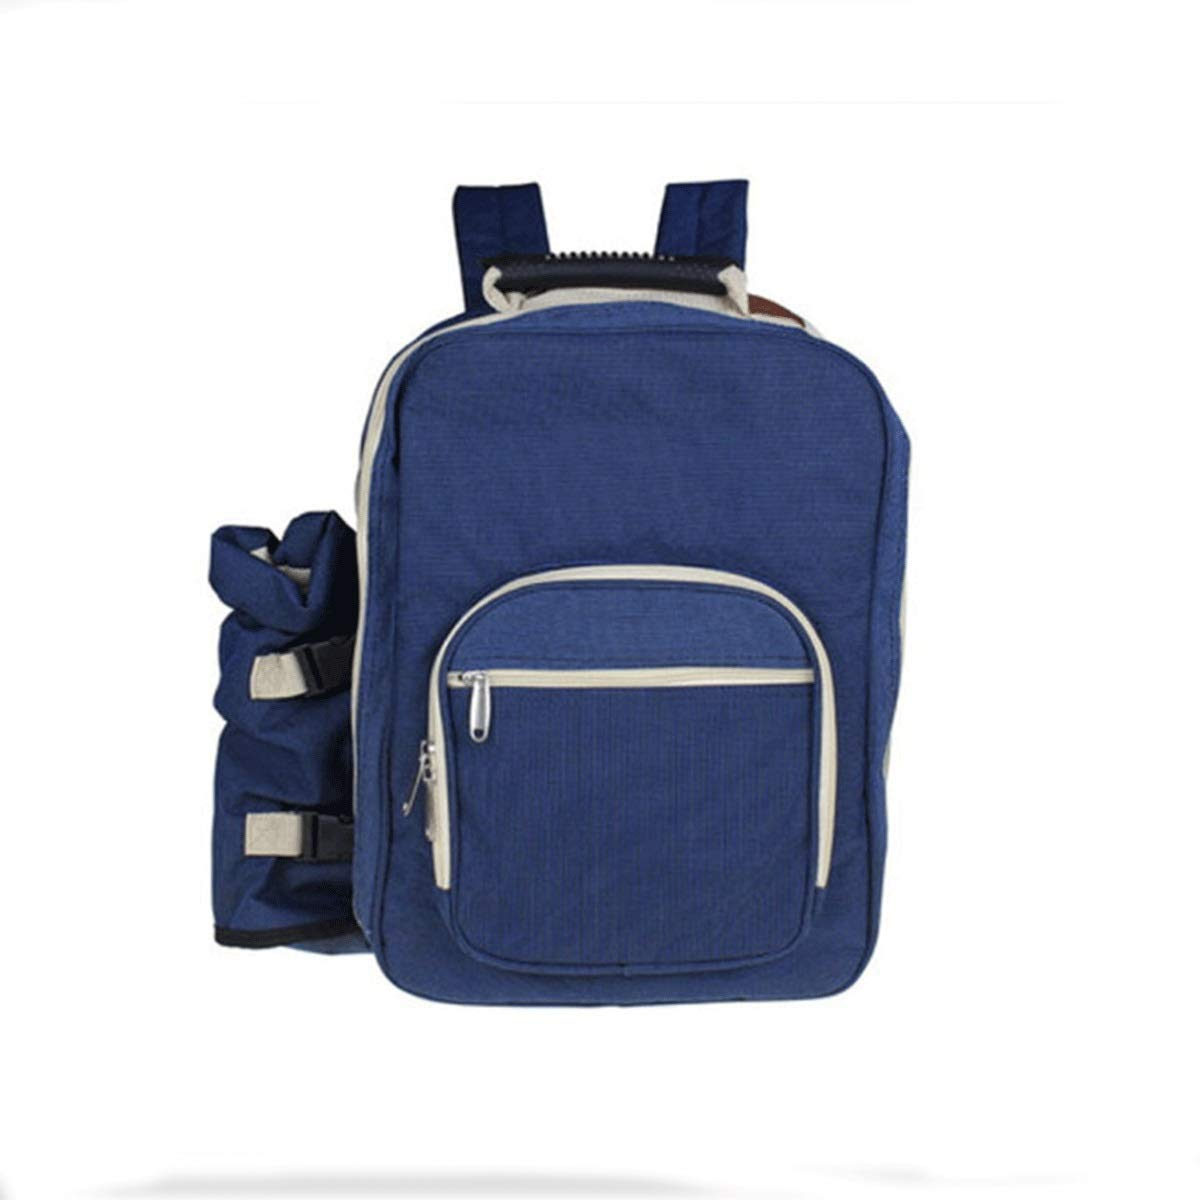 Muziwenju Picnic Bag, Four-Person Cutlery Set Insulation Backpack, Travel Sports Canvas Leisure Bag, Travel Outdoor Picnic Backpack, Blue / 20-35 Liters, Best Gift (Color : Blue)